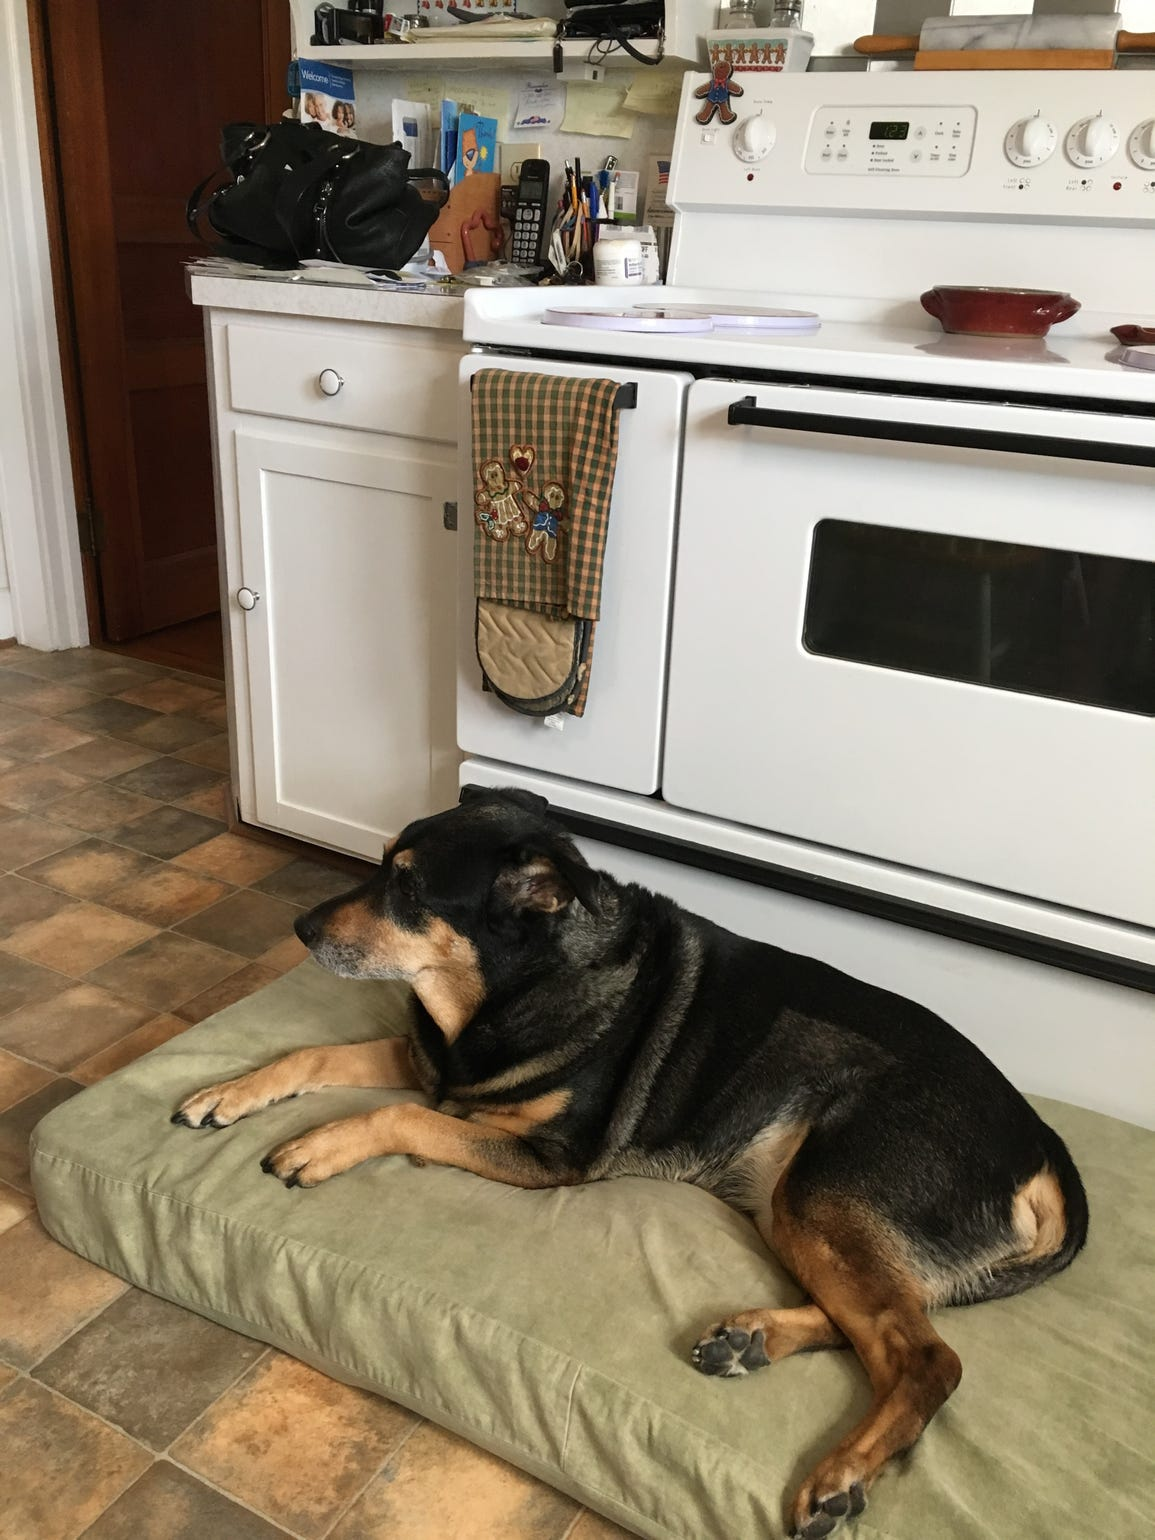 Howard Melnikoff's dog in the family's kitchen, closely